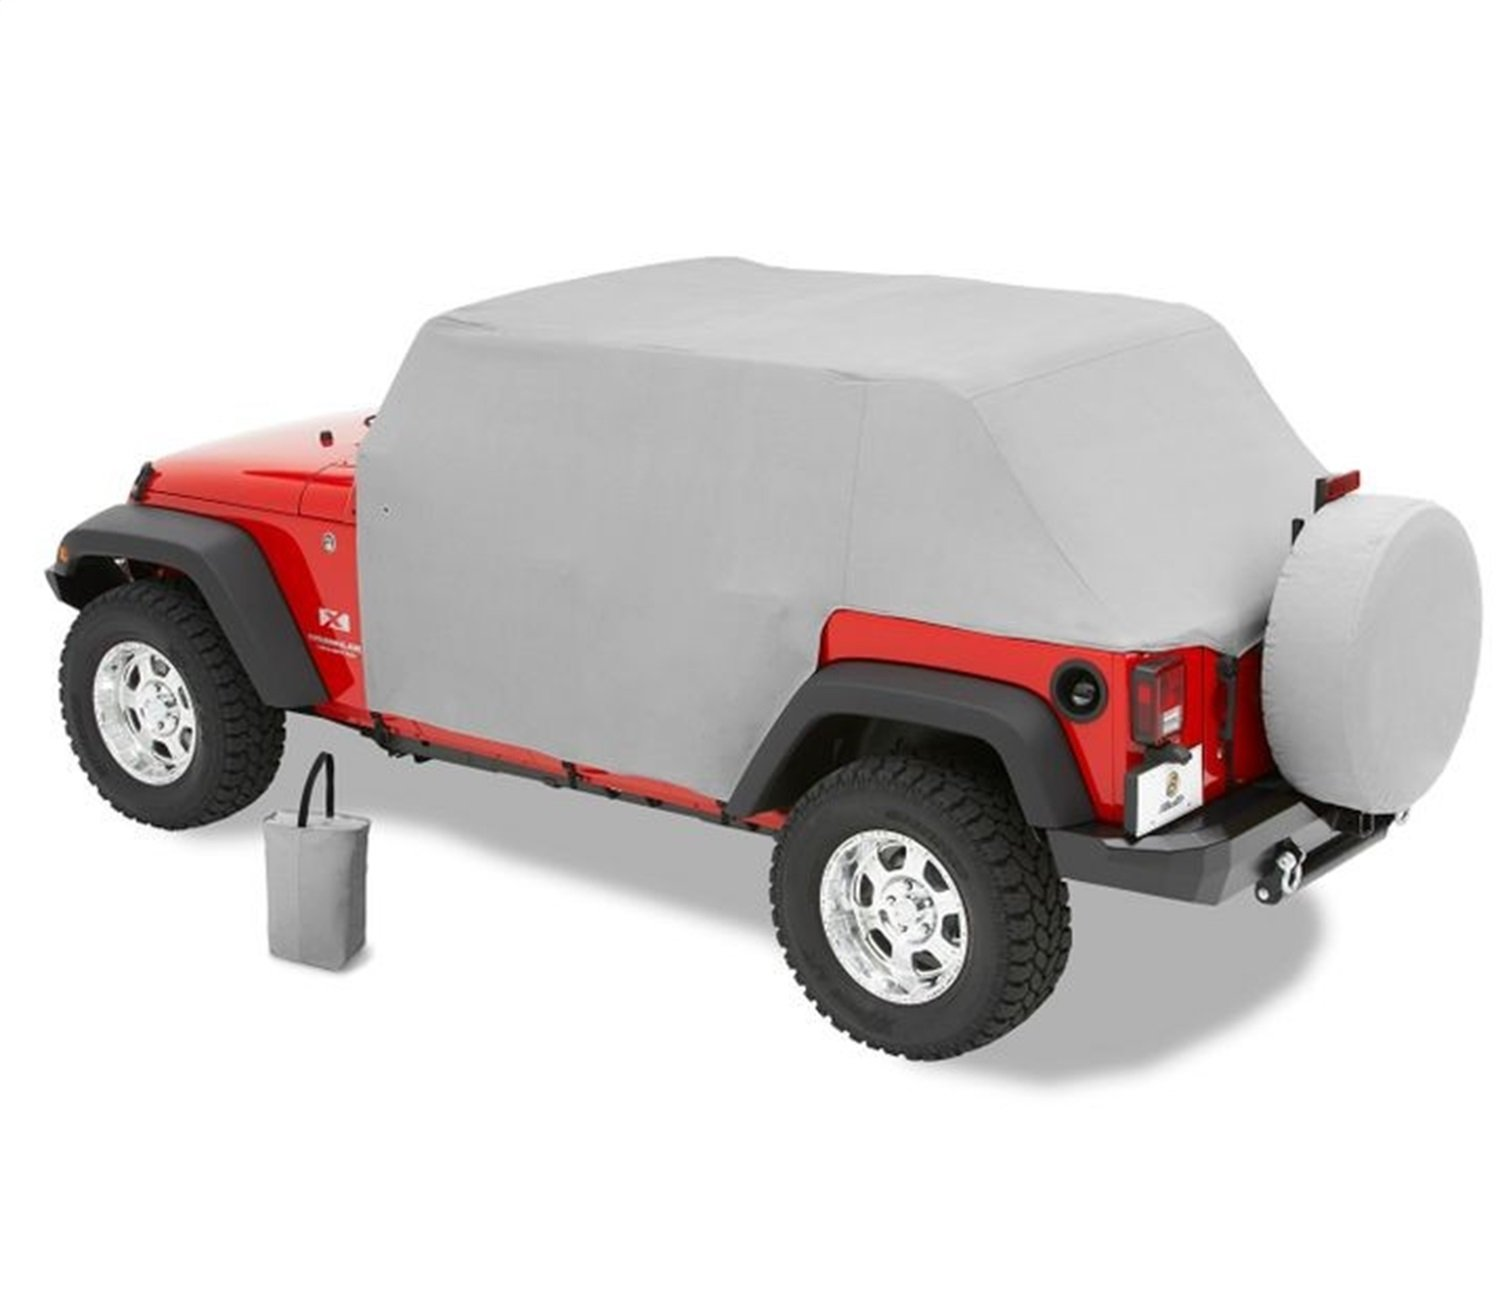 Bestop 81041-09 Charcoal All Weather Trail Cover for 2007-2018 Wrangler JK Unlimited